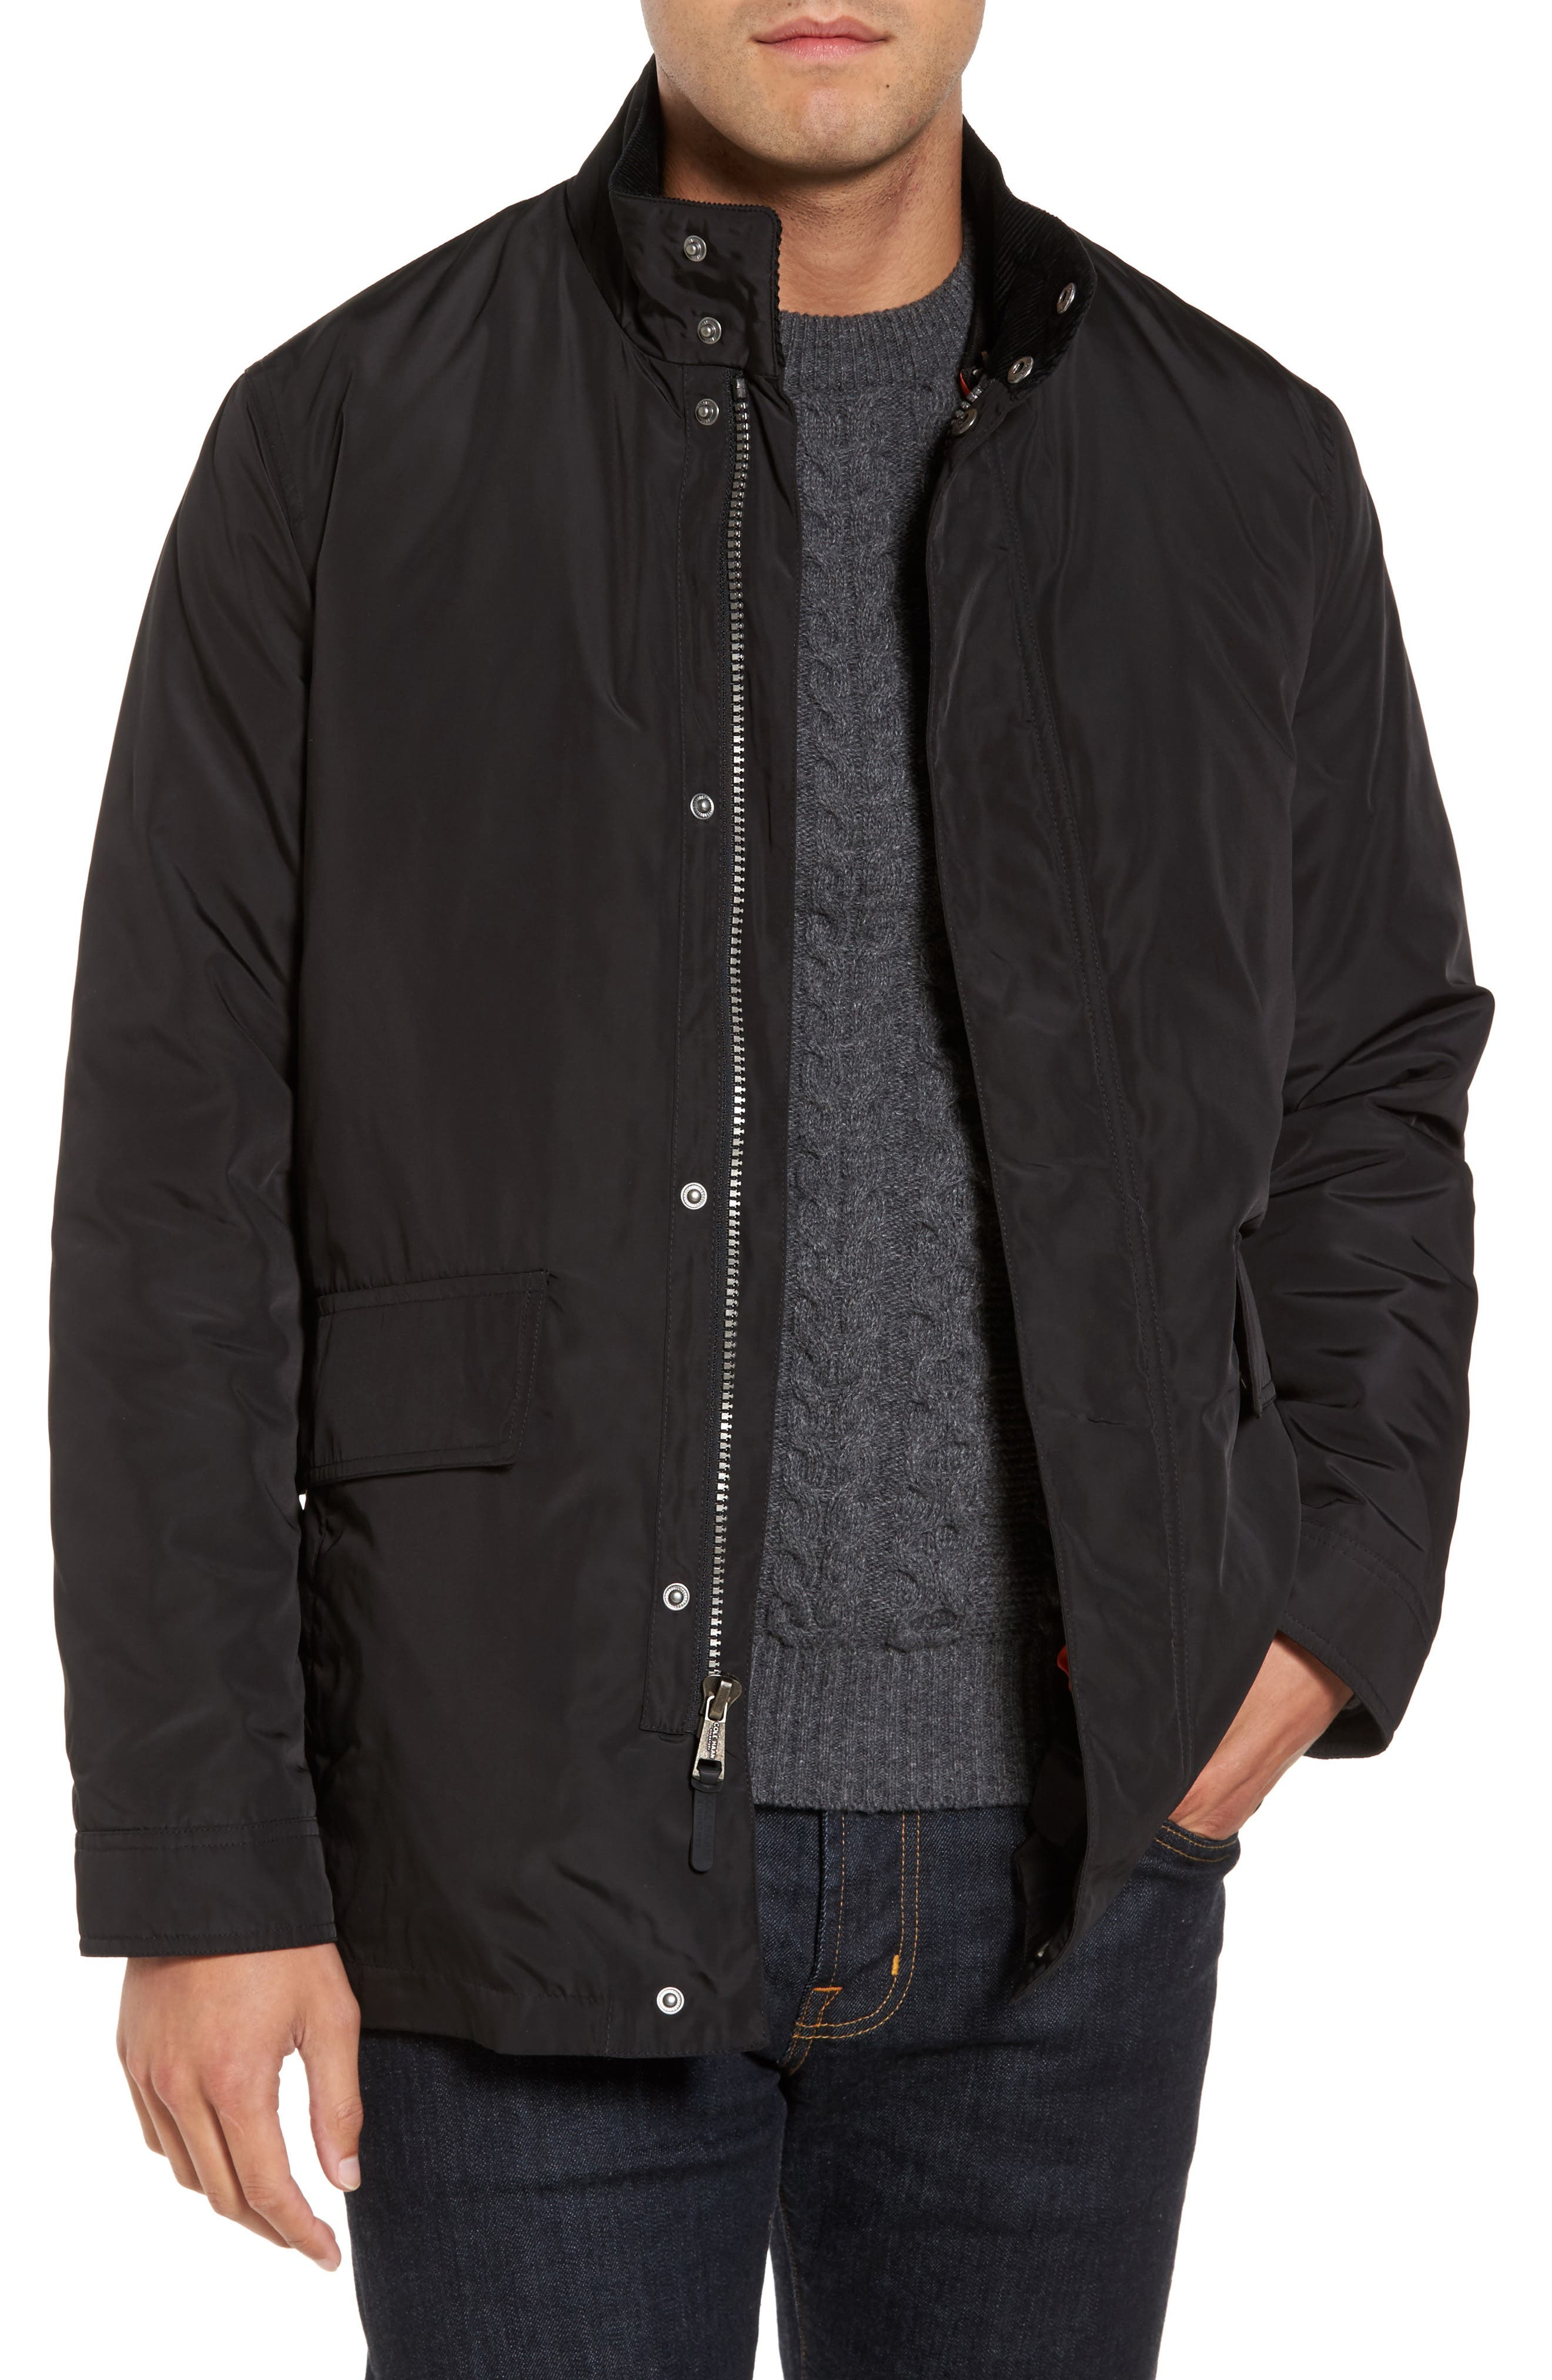 Coat with Removable Bomber Jacket,                             Main thumbnail 1, color,                             001